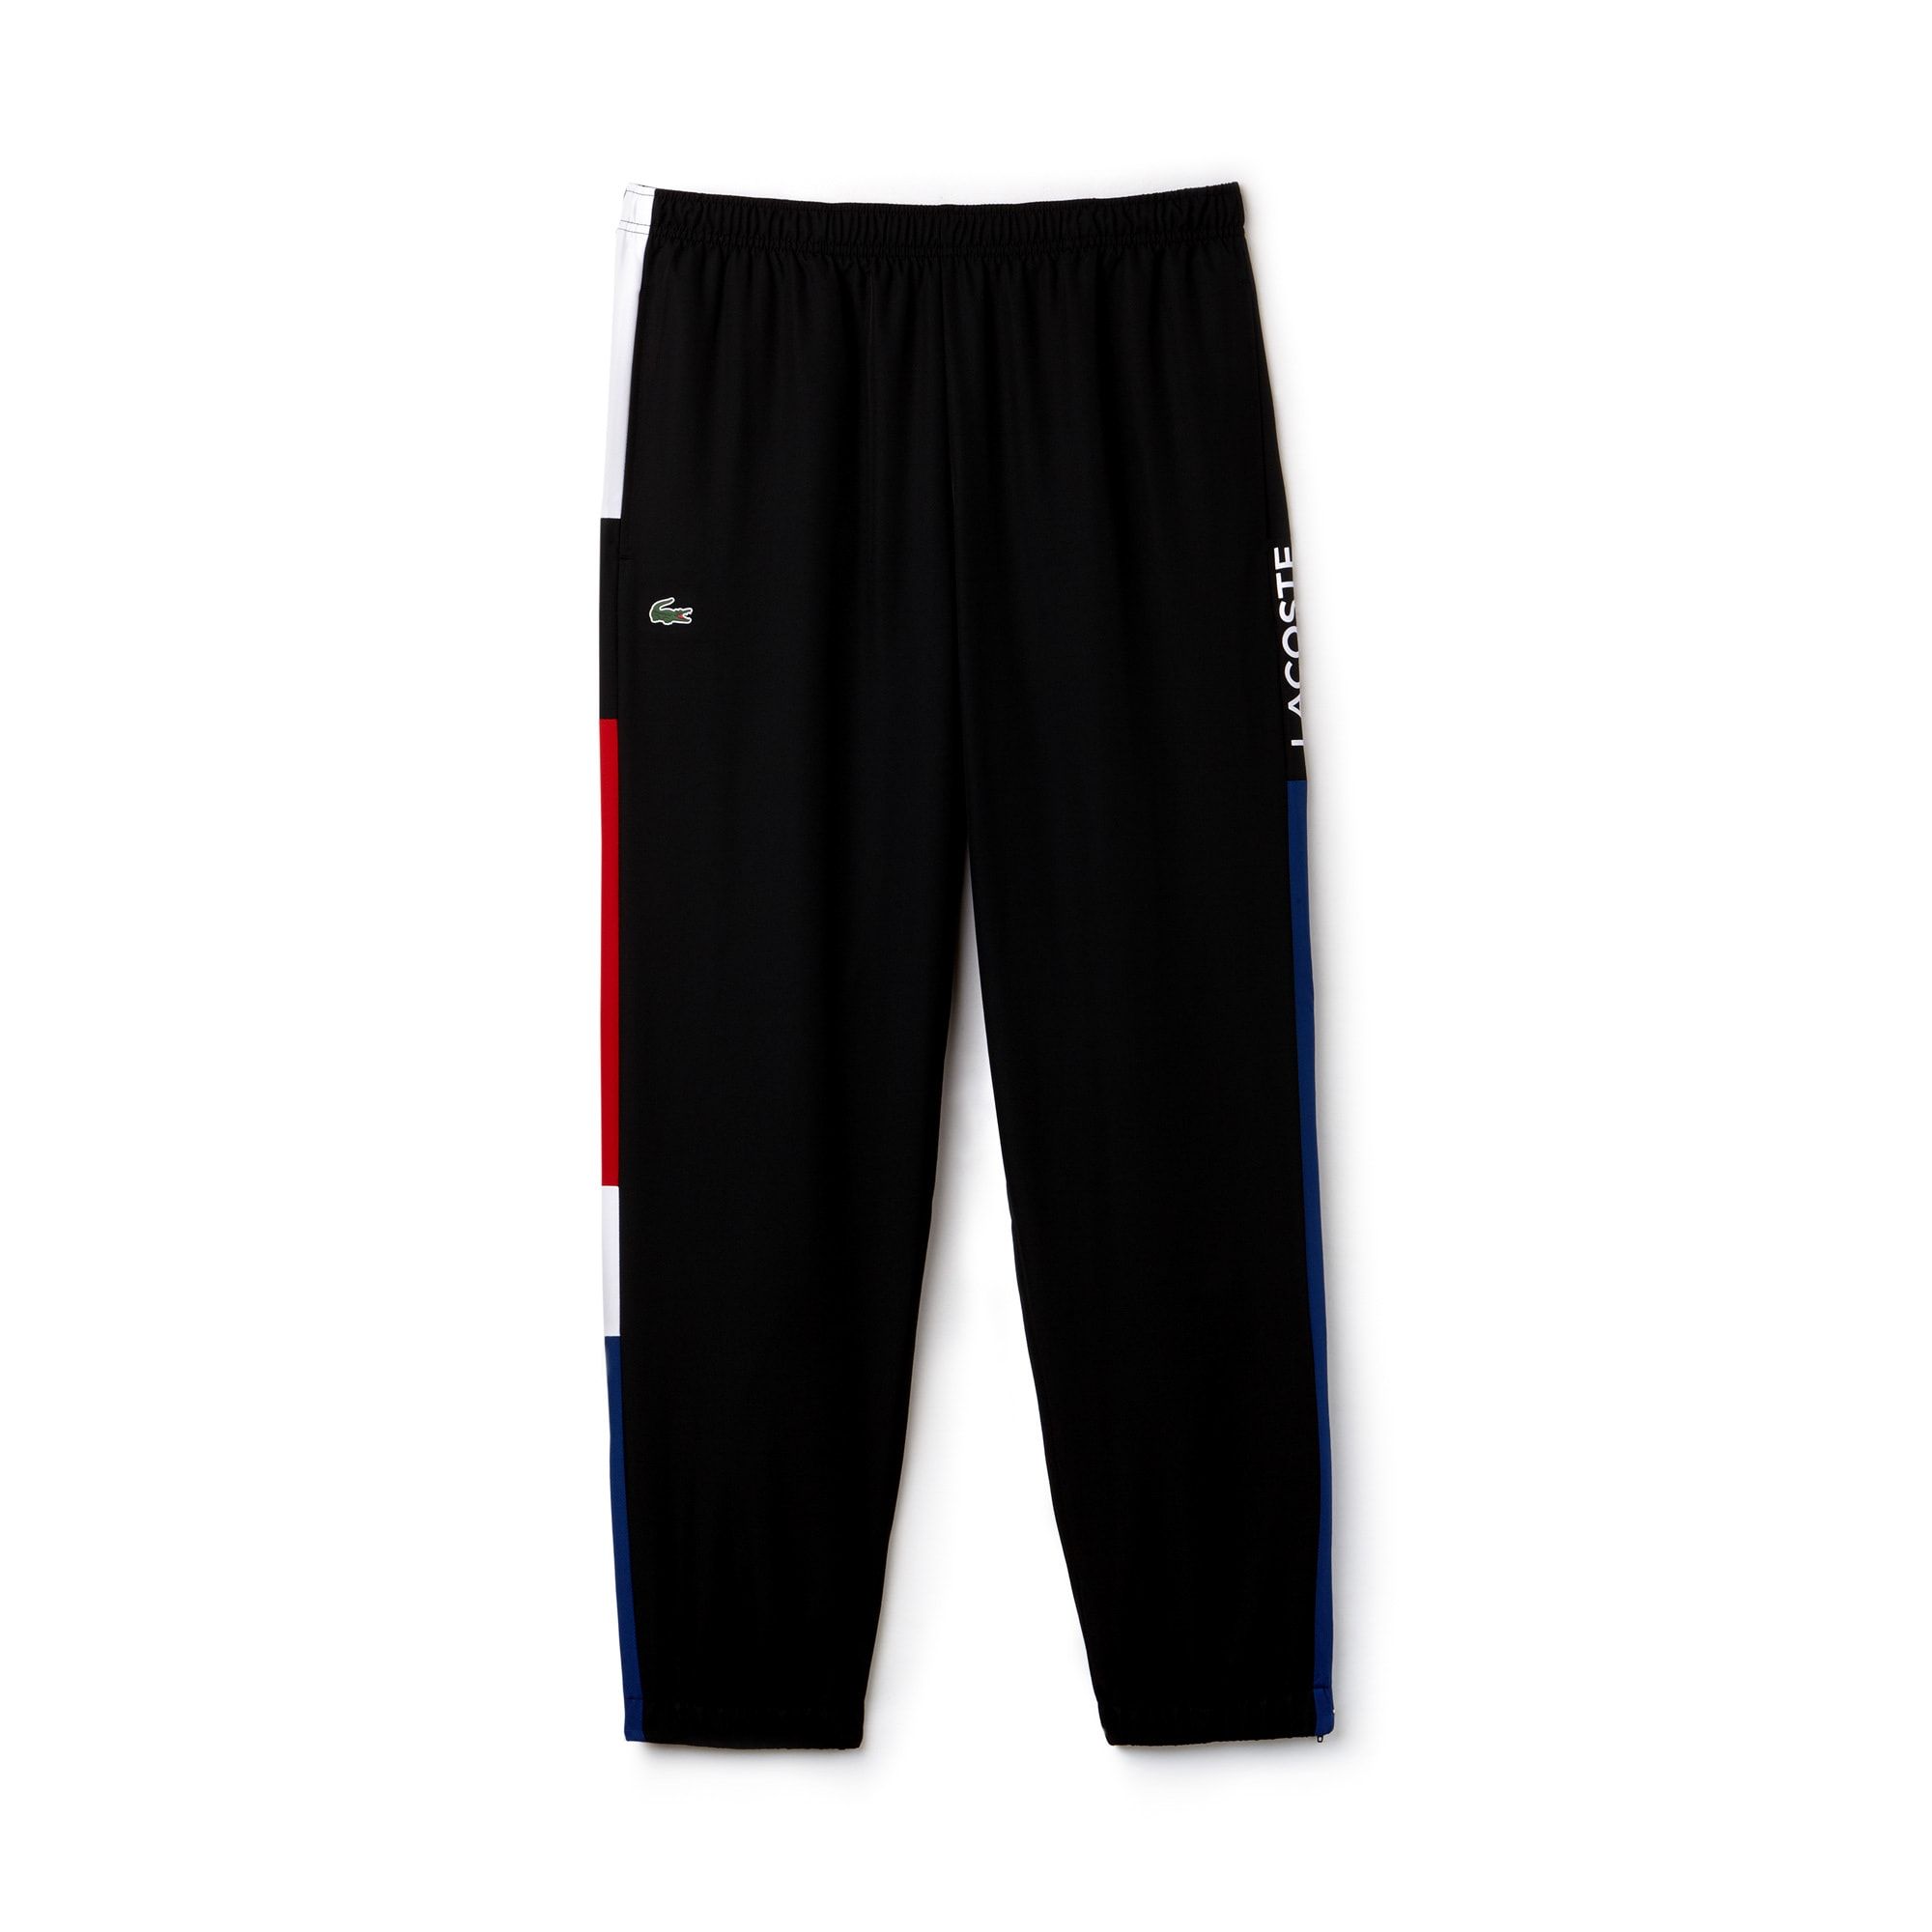 Men's Lacoste SPORT Colorblock Band Tennis Sweatpants